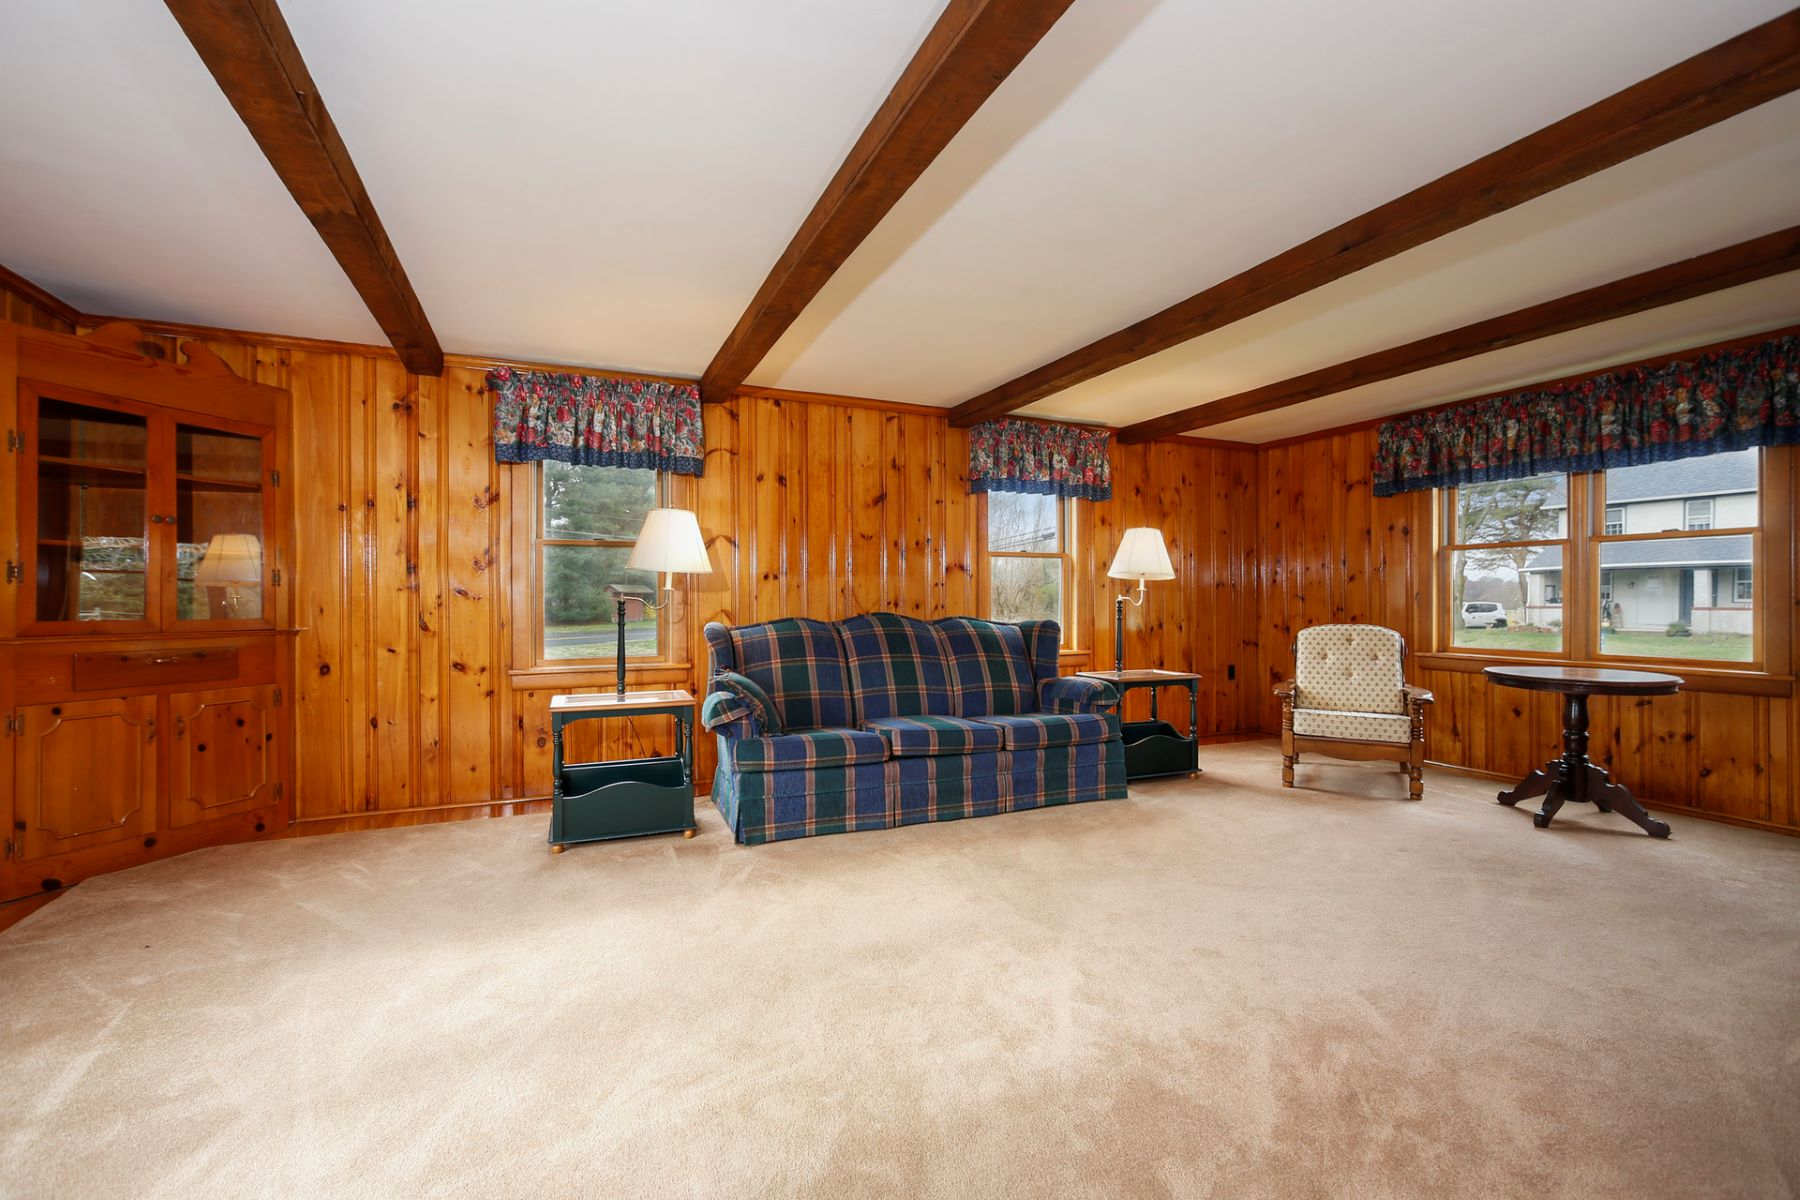 Additional photo for property listing at Three Bedroom Ranch Streaming With Natural Light 370 Main Street, Lumberton, New Jersey 08048 États-Unis